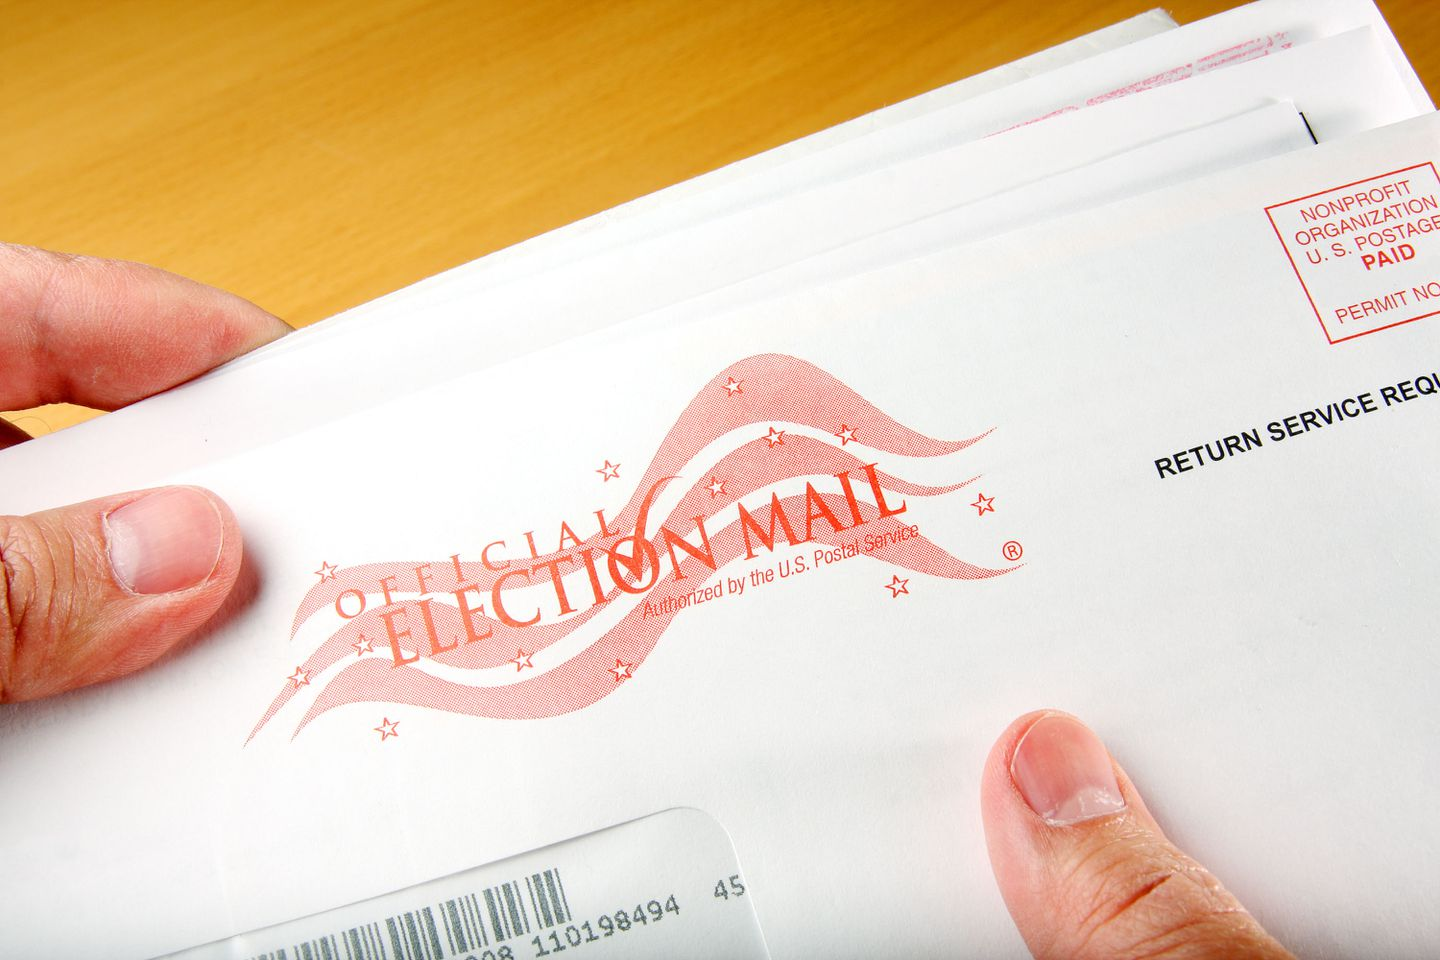 A voter receives a sample election ballot in the mail. Image via Adobe.